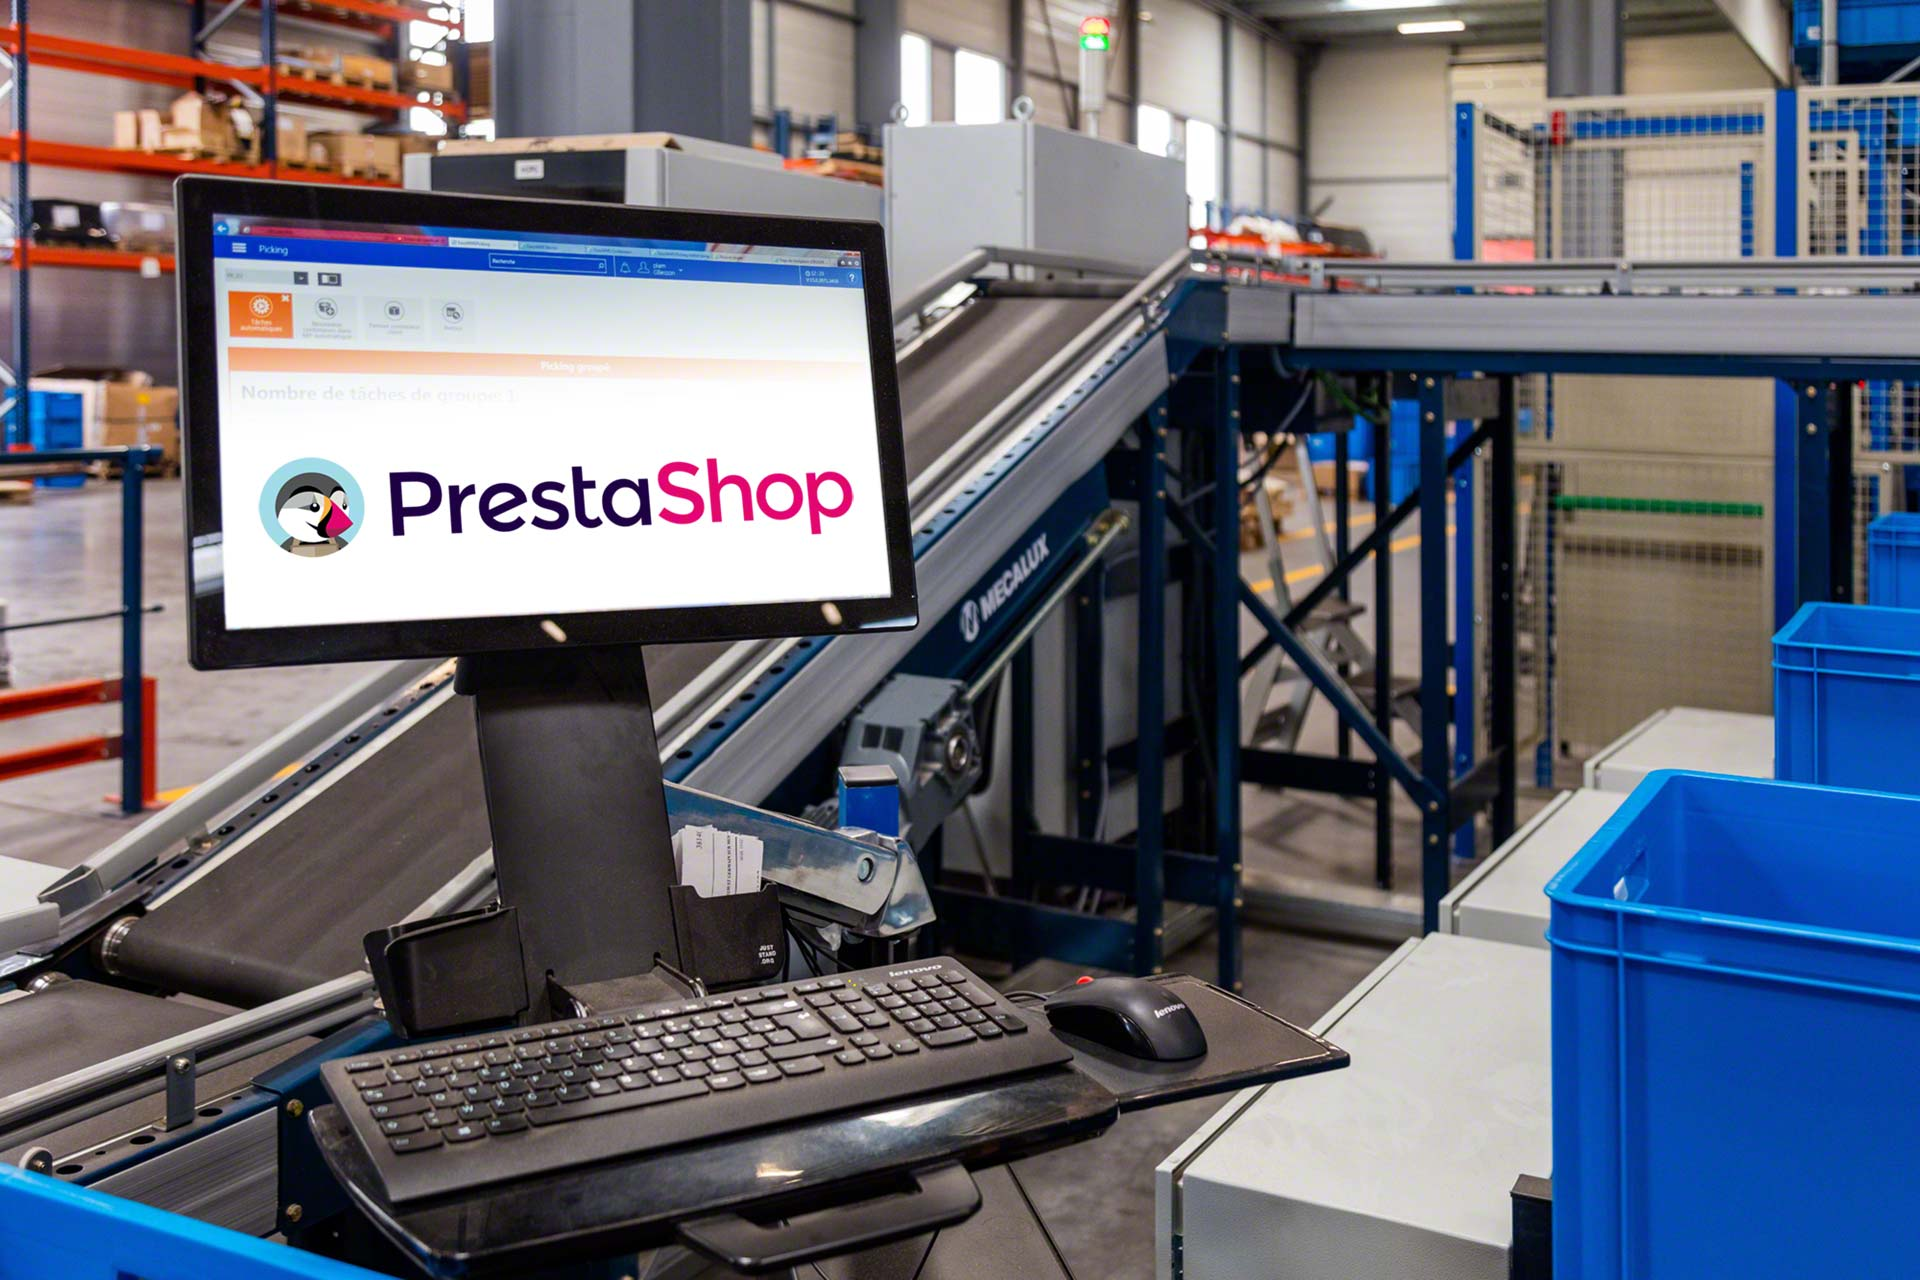 Easy WMS syncs the online PrestaShop store with the stock in the warehouse